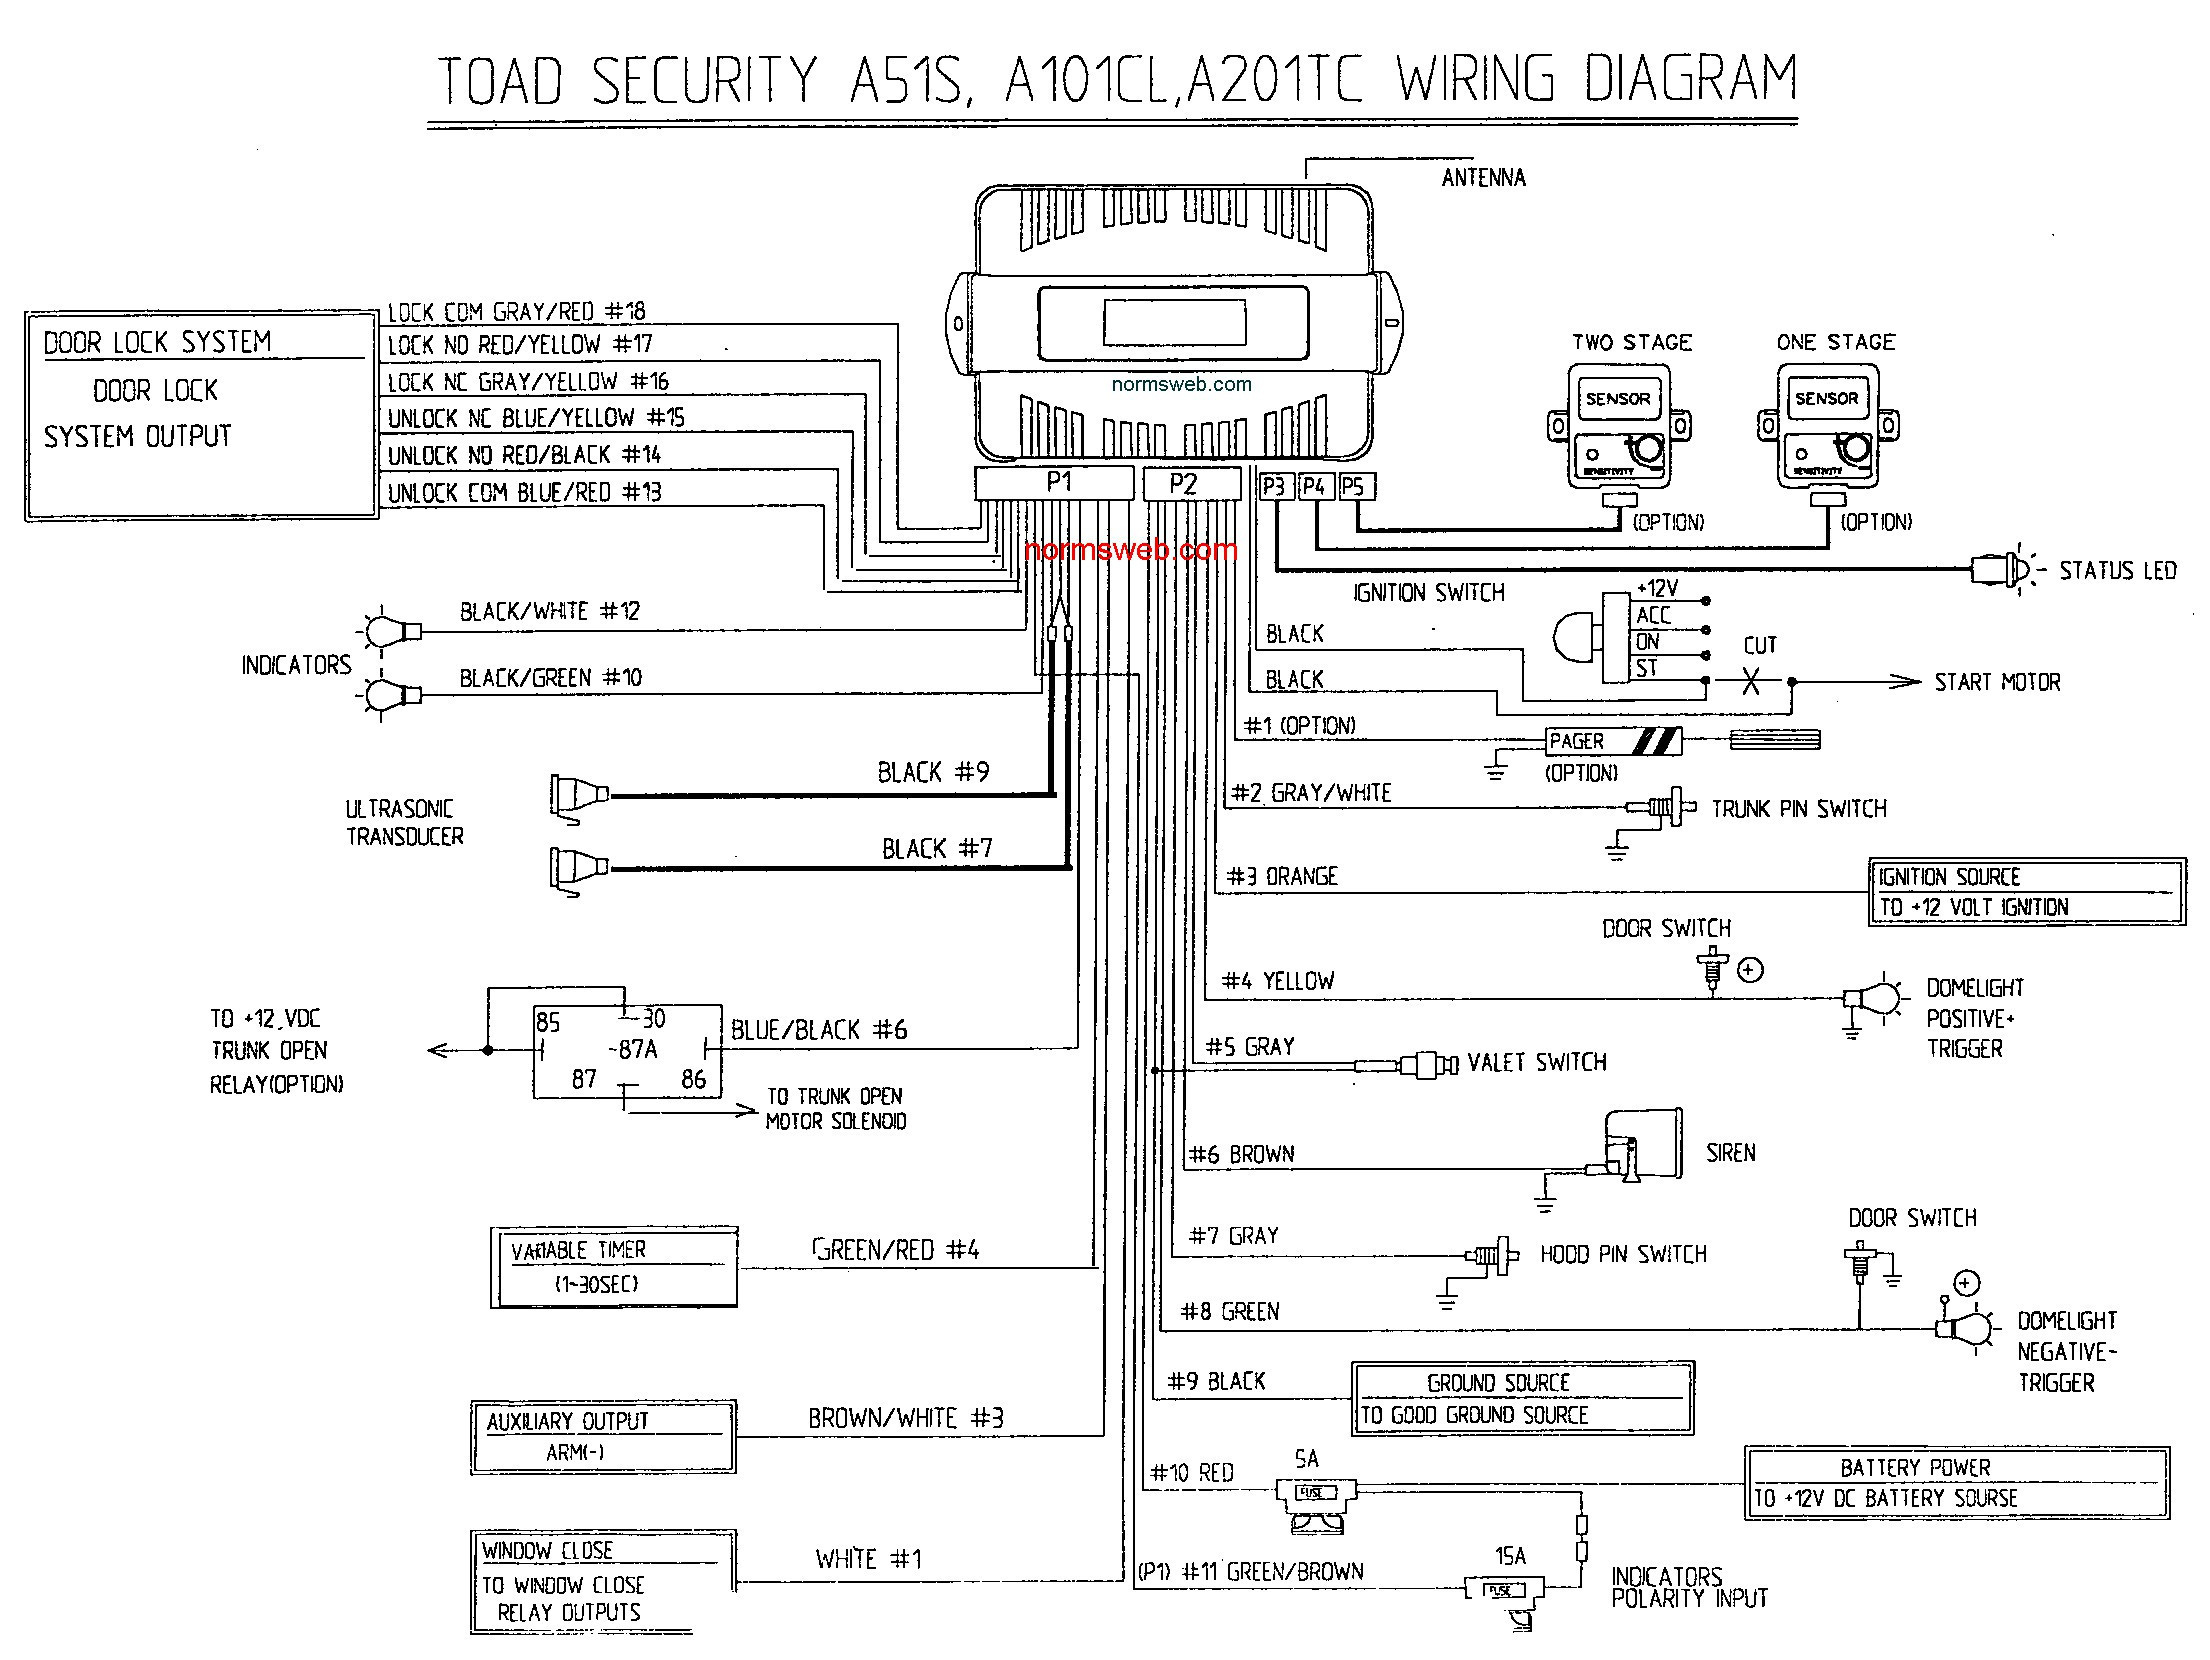 viper 4104 wiring diagrams viper 5305v wiring diagram download viper security wiring diagrams